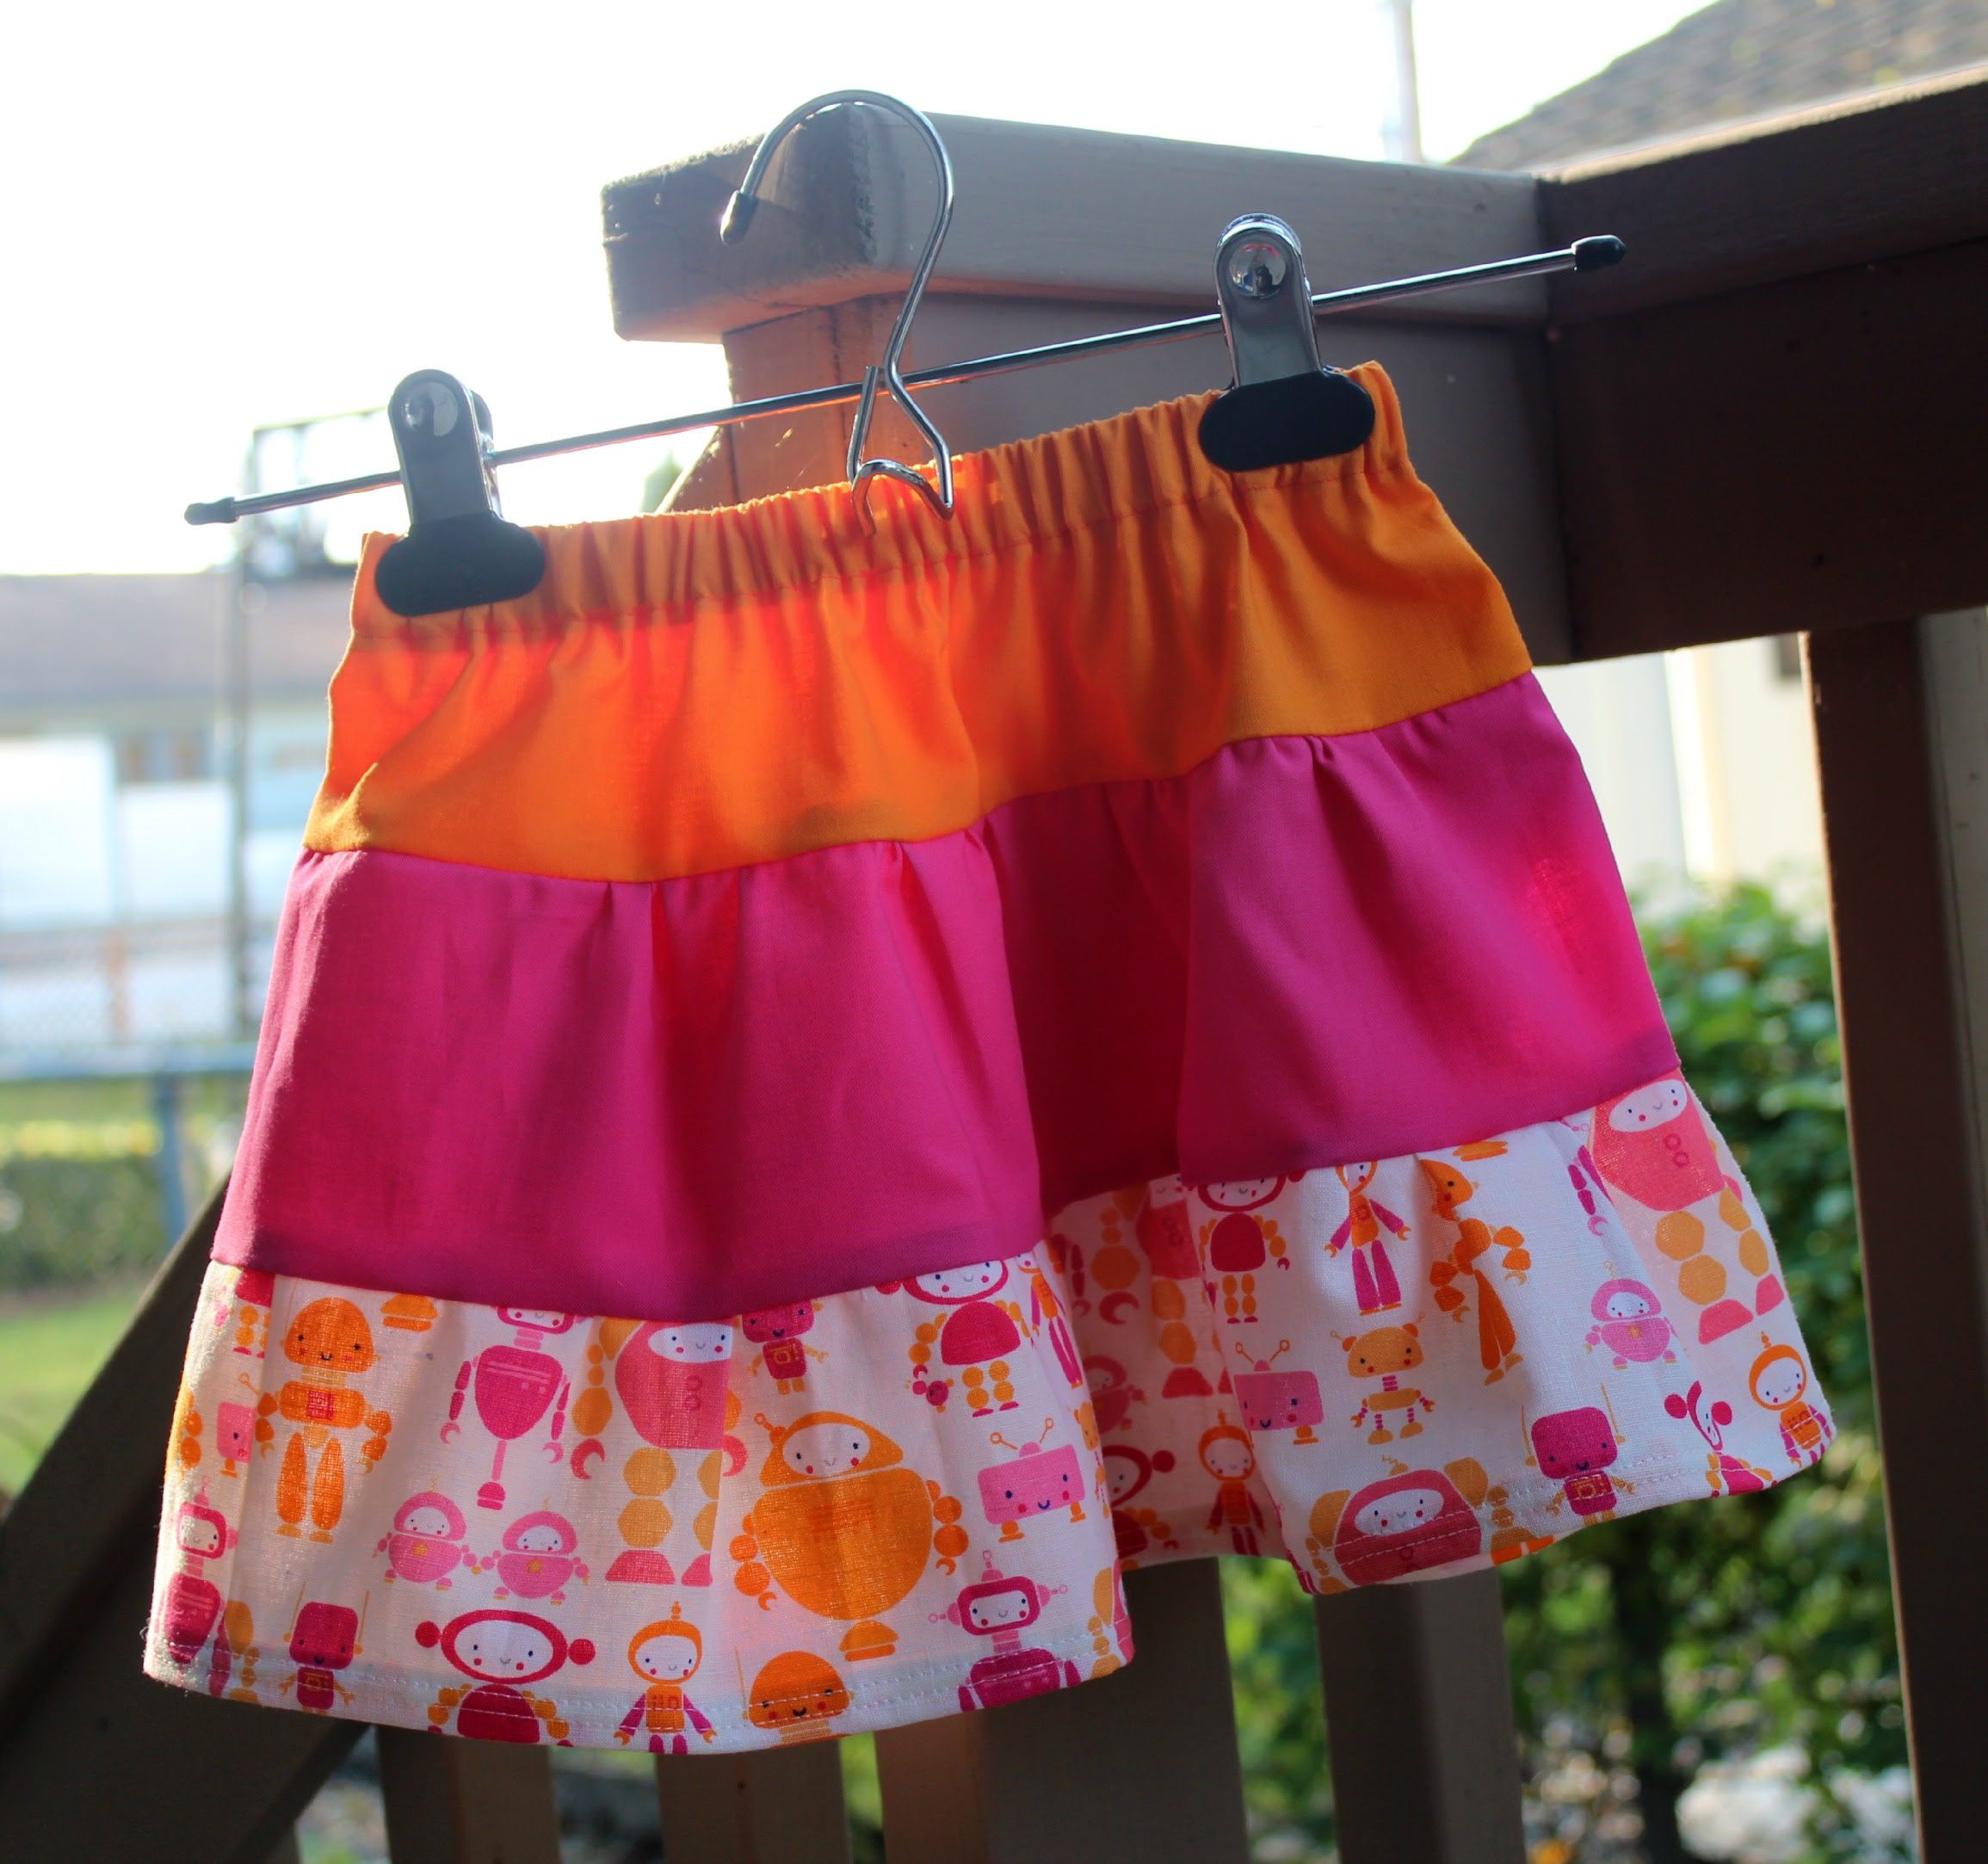 Basic 3 Tiered Skirt (size 2T)